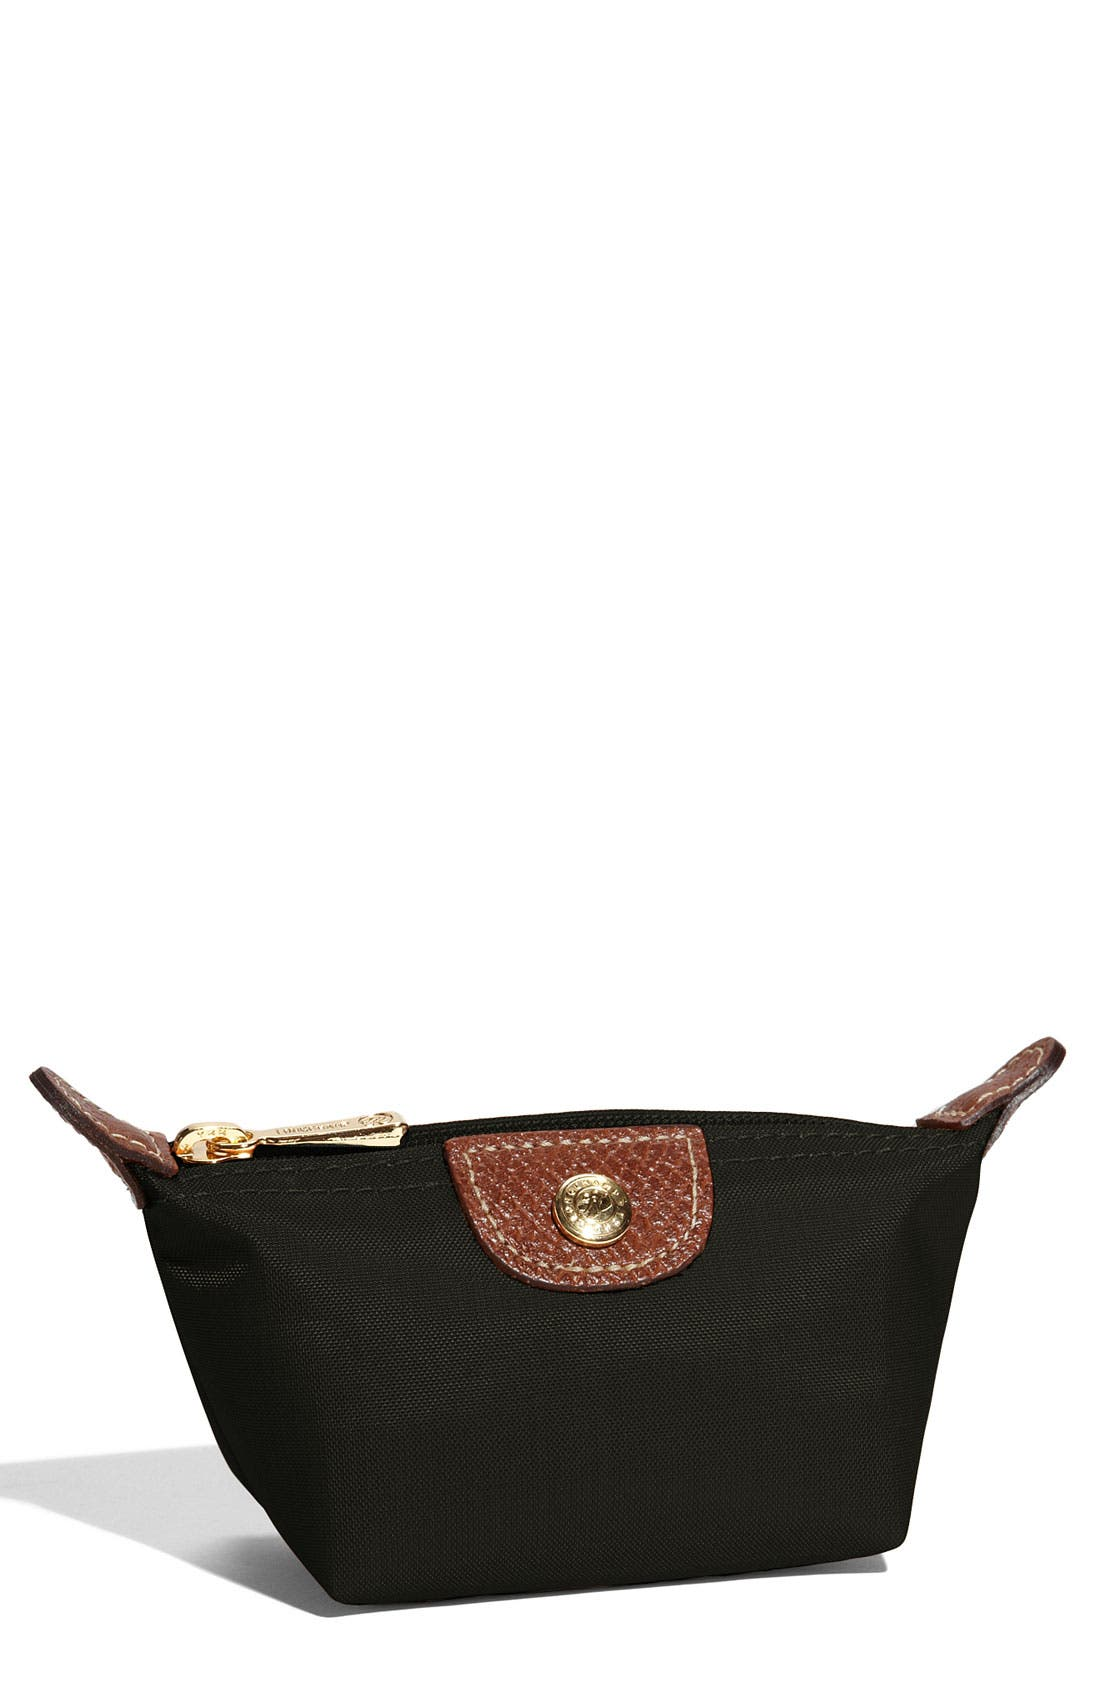 Alternate Image 1 Selected - Longchamp 'Le Pliage' Coin Purse